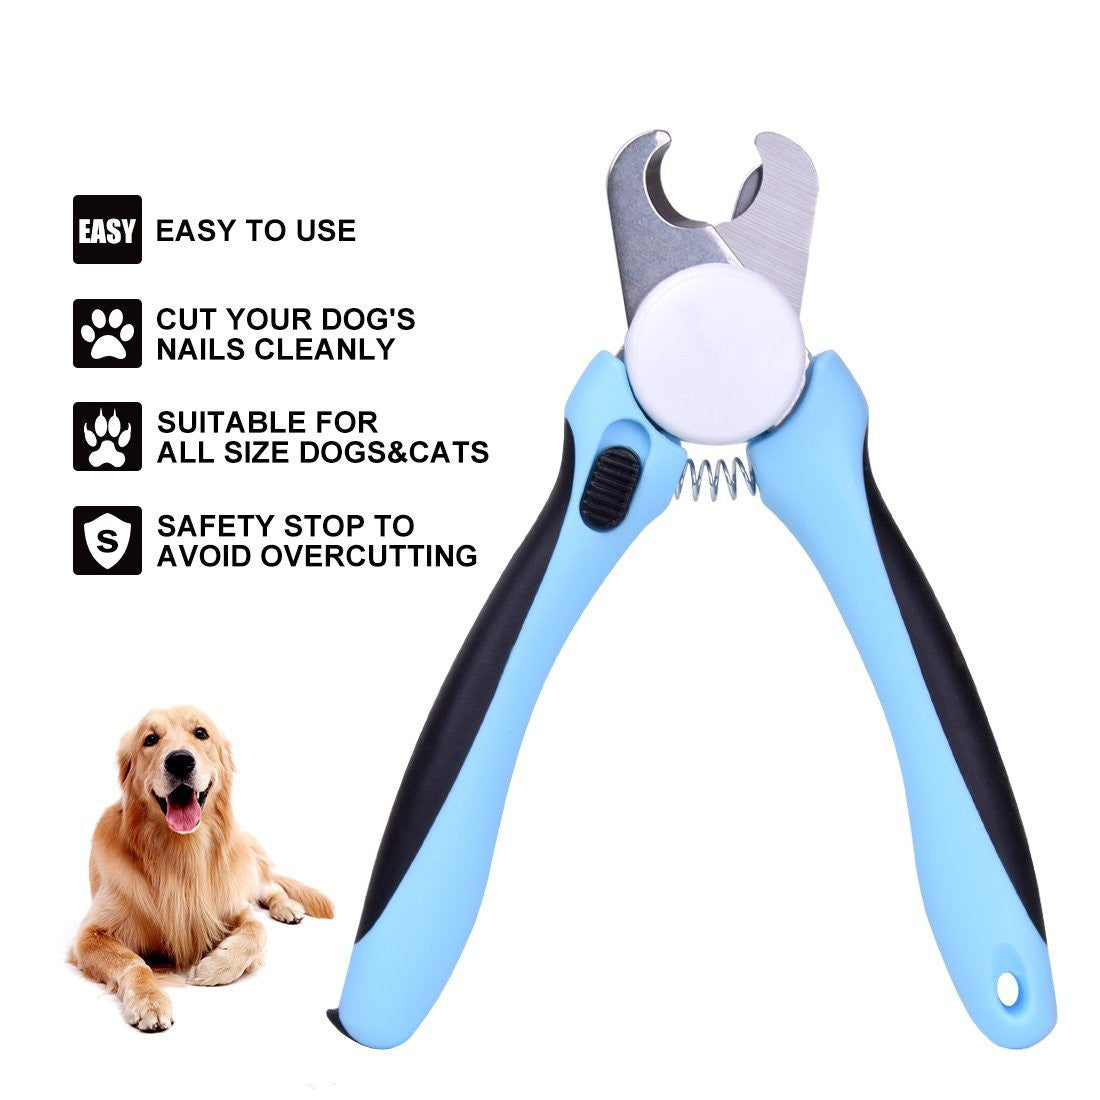 Pet Nail Clippers Trimmer with Safety Guard to Avoid Overcutting